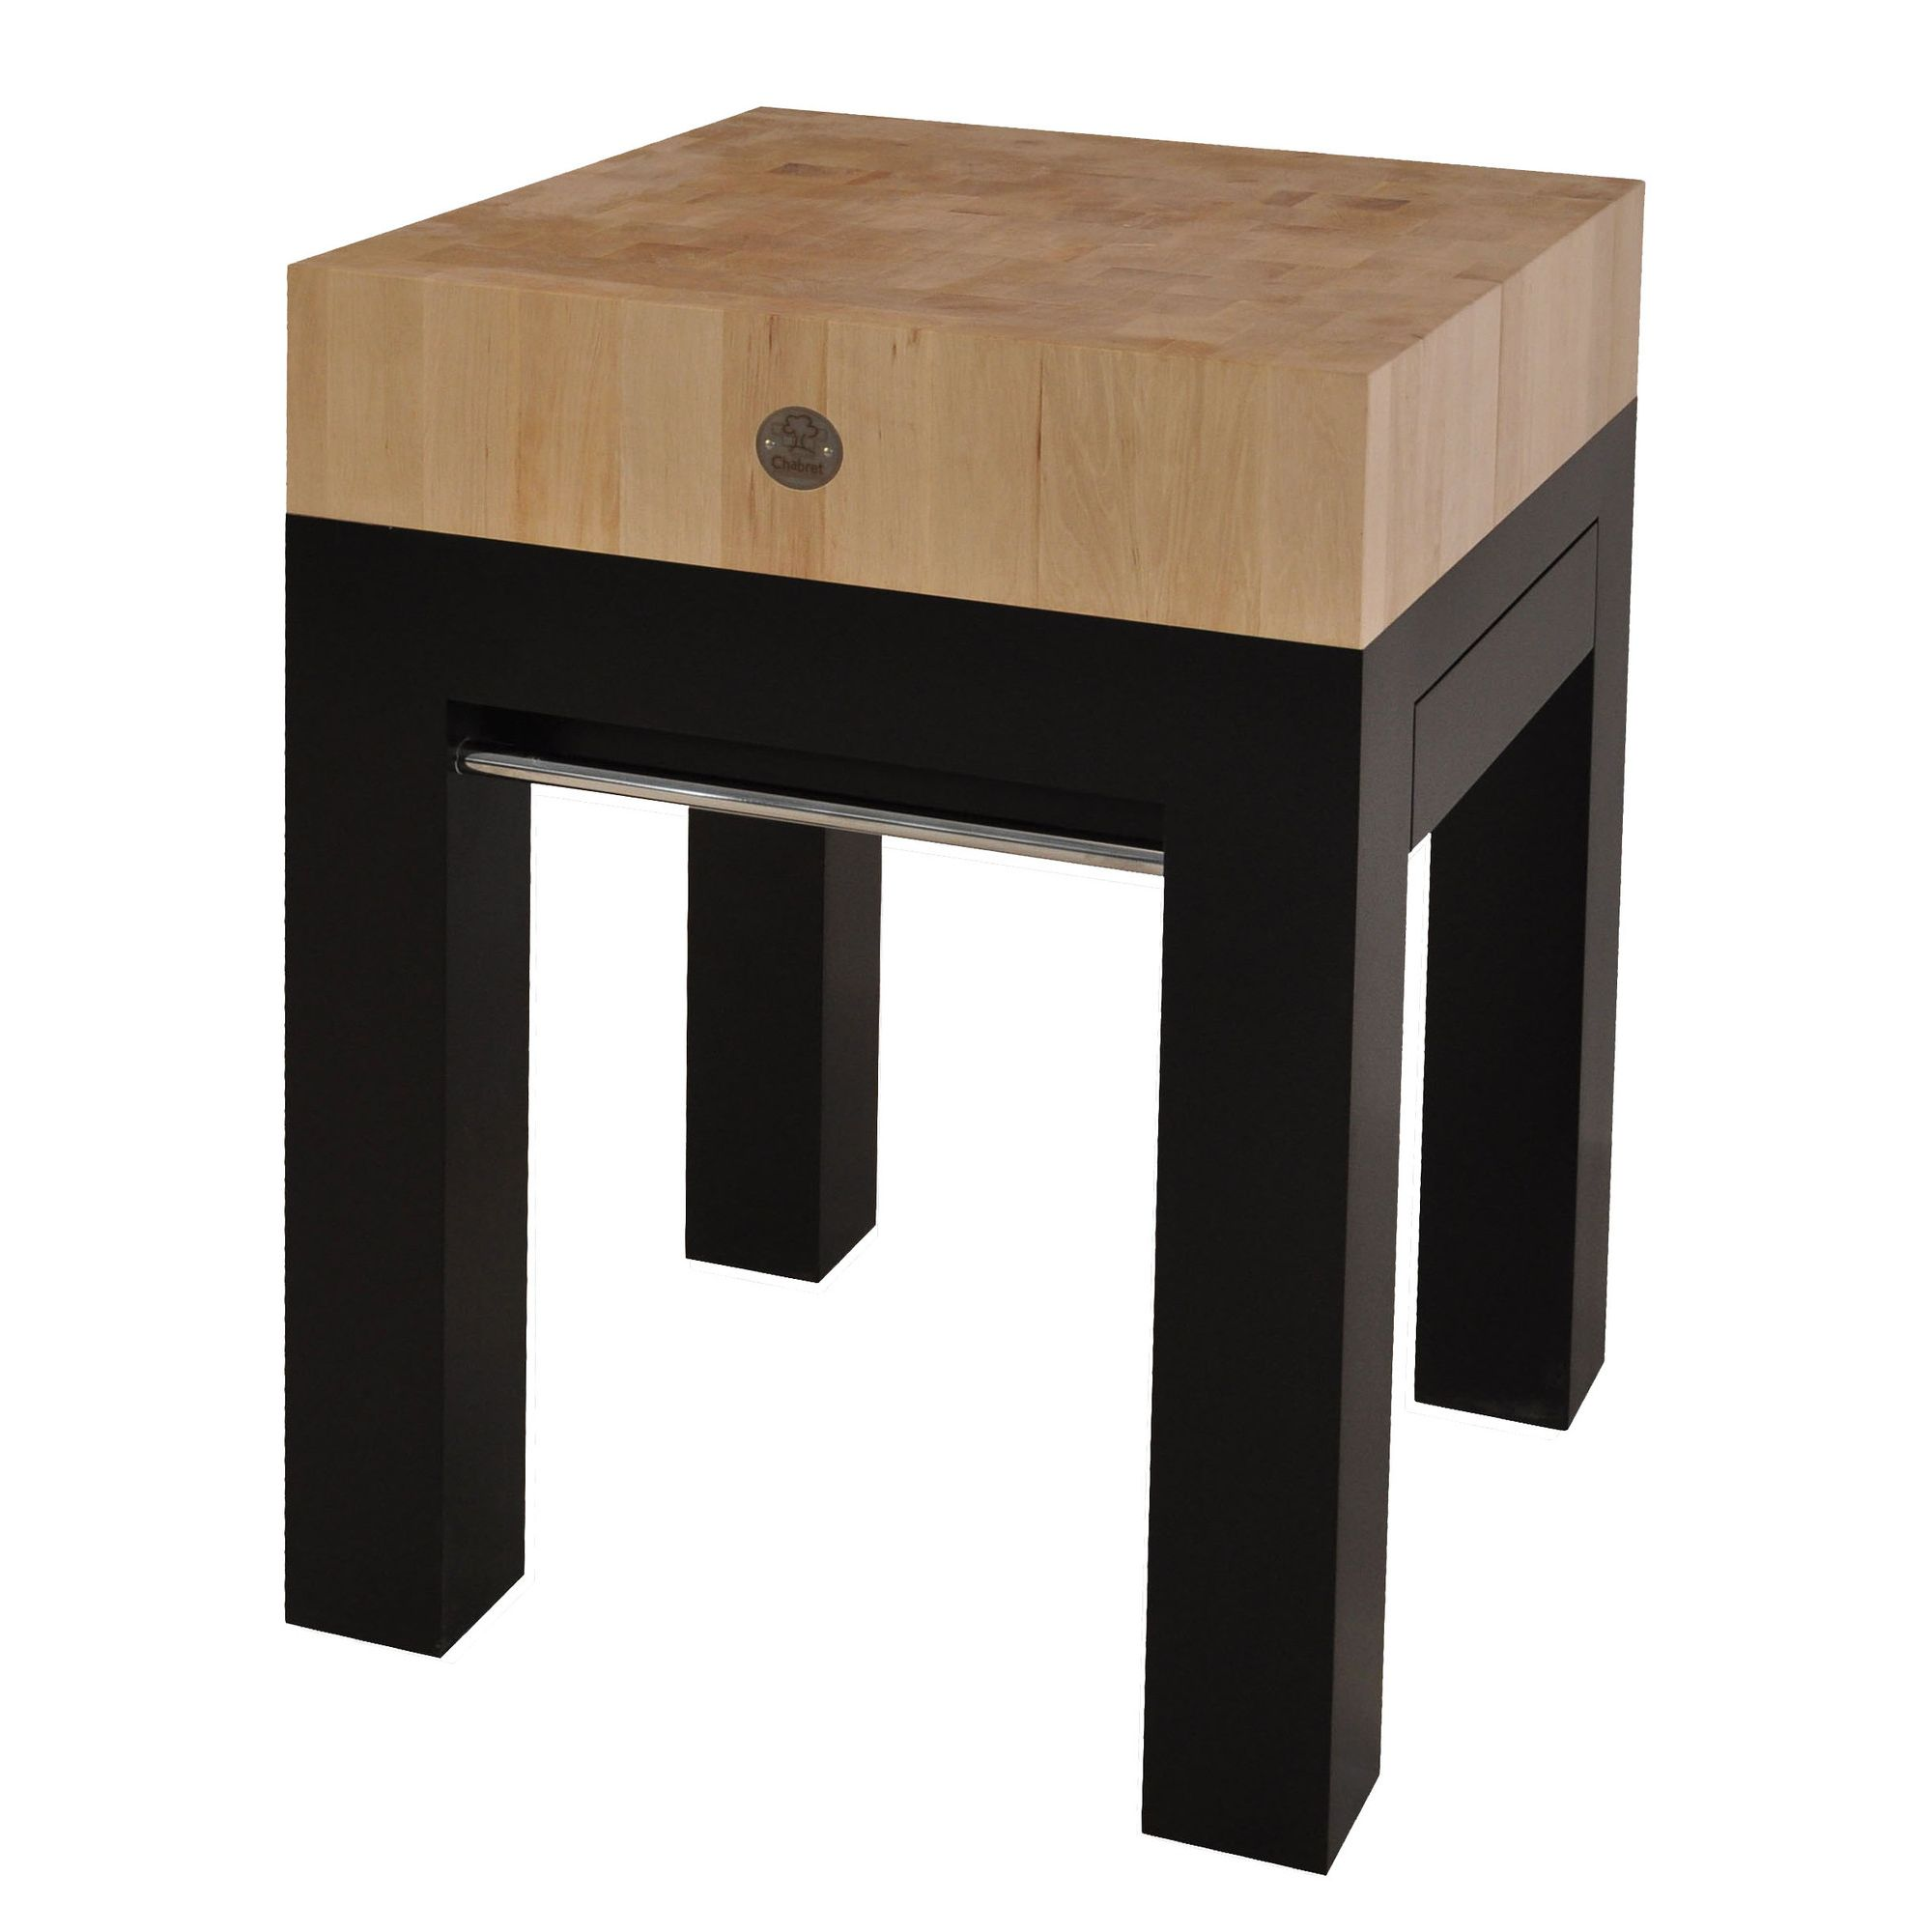 Chabret Butcher's Block by MC Berger - 90cm X 60cm X 60cm at Tescos Direct